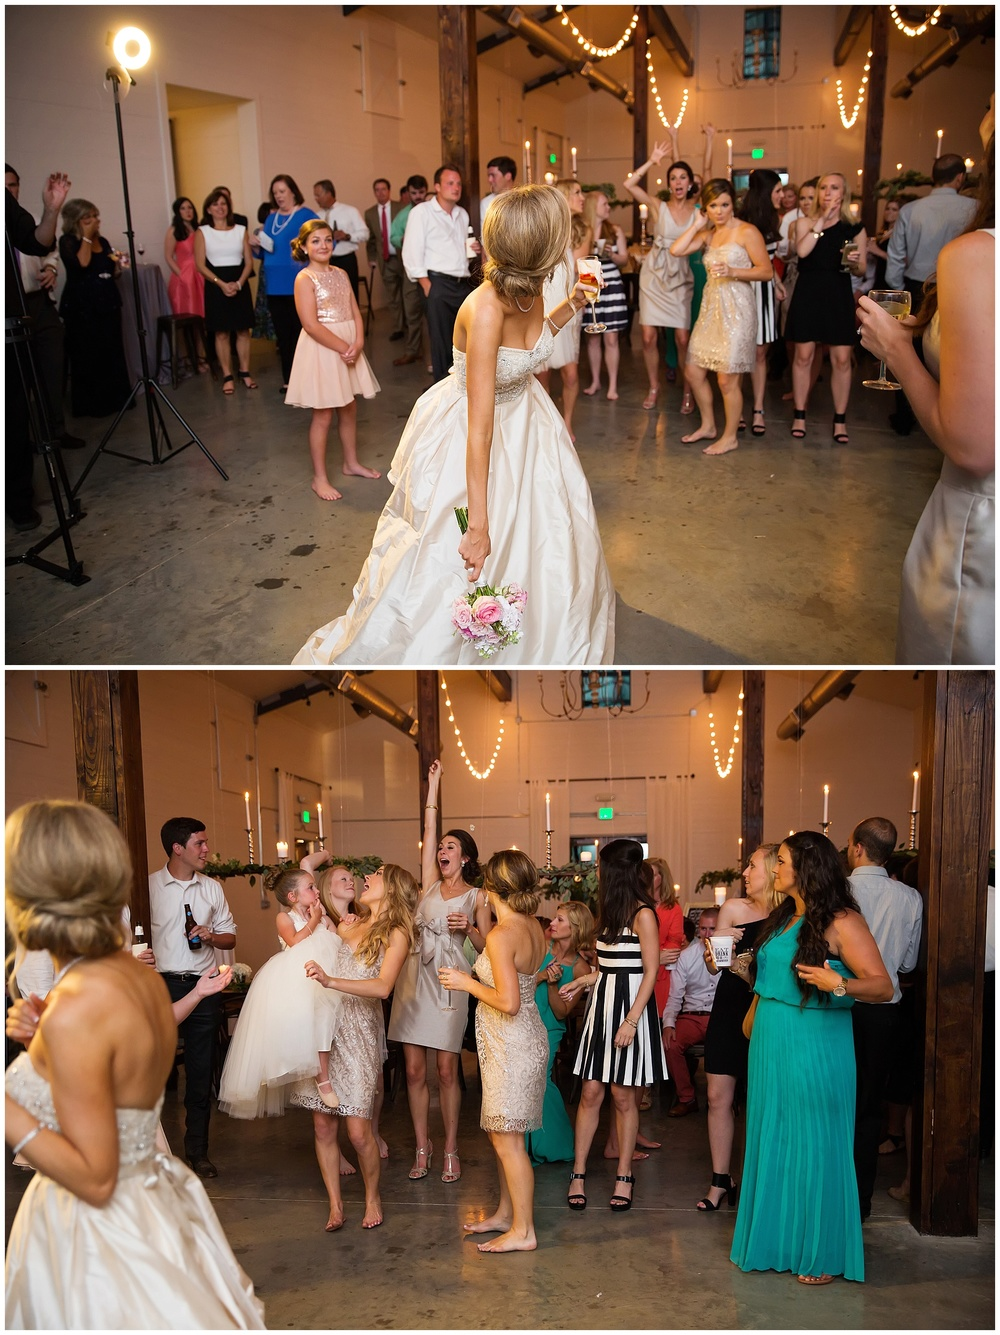 LittleRock-Arkansas-Wedding-32.jpg